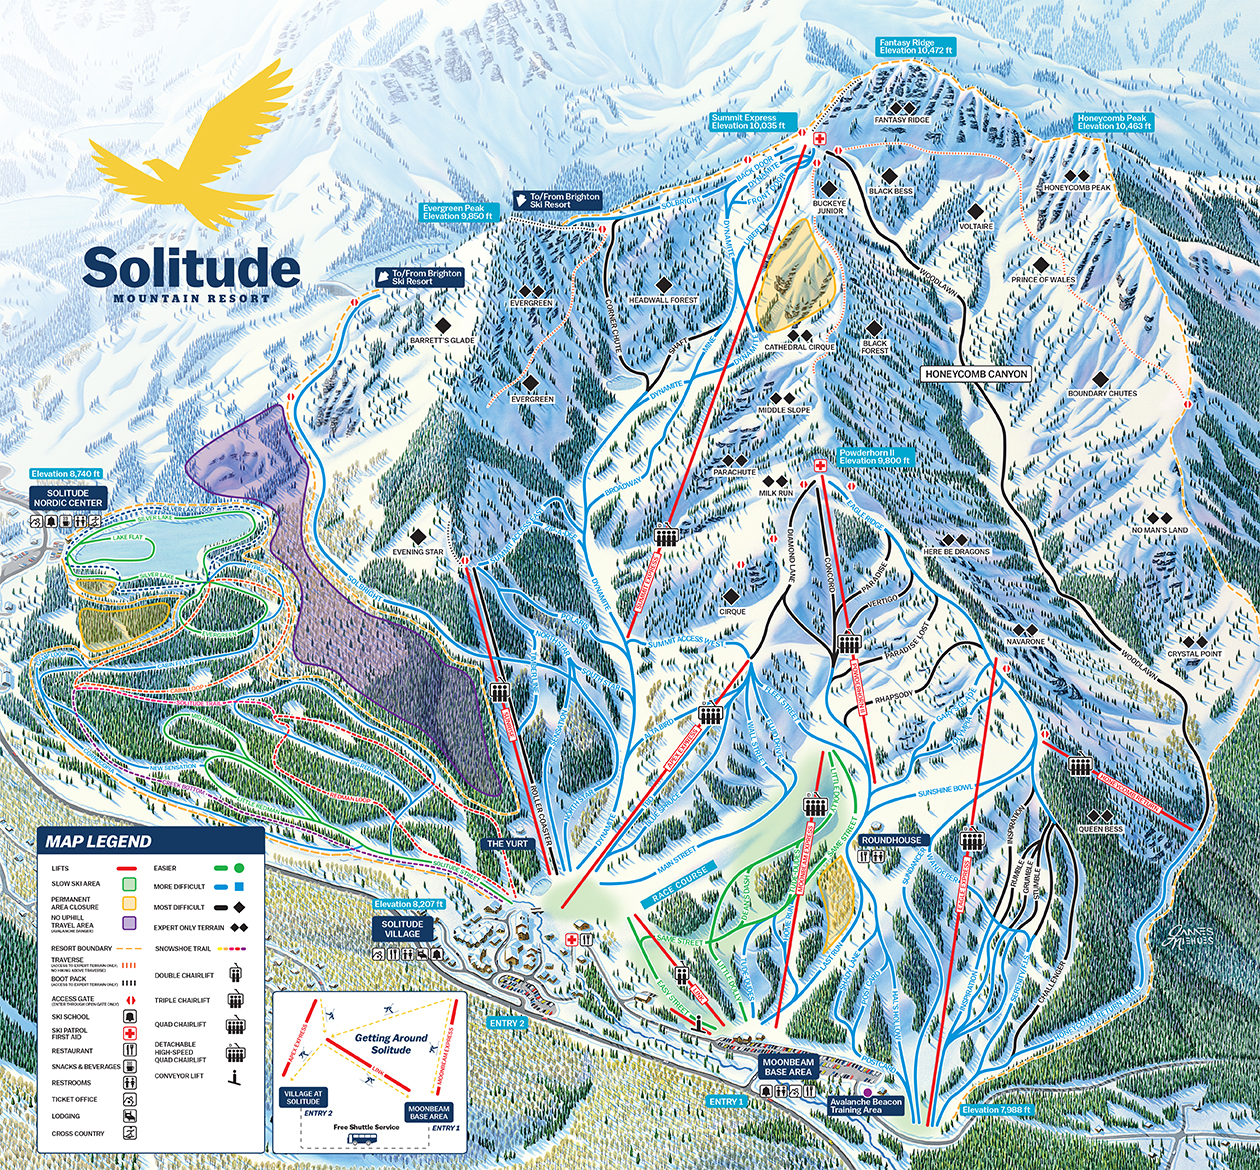 Ski City Neighborhoods | Salt Lake City Area Salt Lake City Ski Resorts Map Of Location on map utah salt lake city skiing, map of utah and surrounding attractions, map of ny ski areas southern, salt lake utah ski resorts, map of lake tahoe ski resorts,